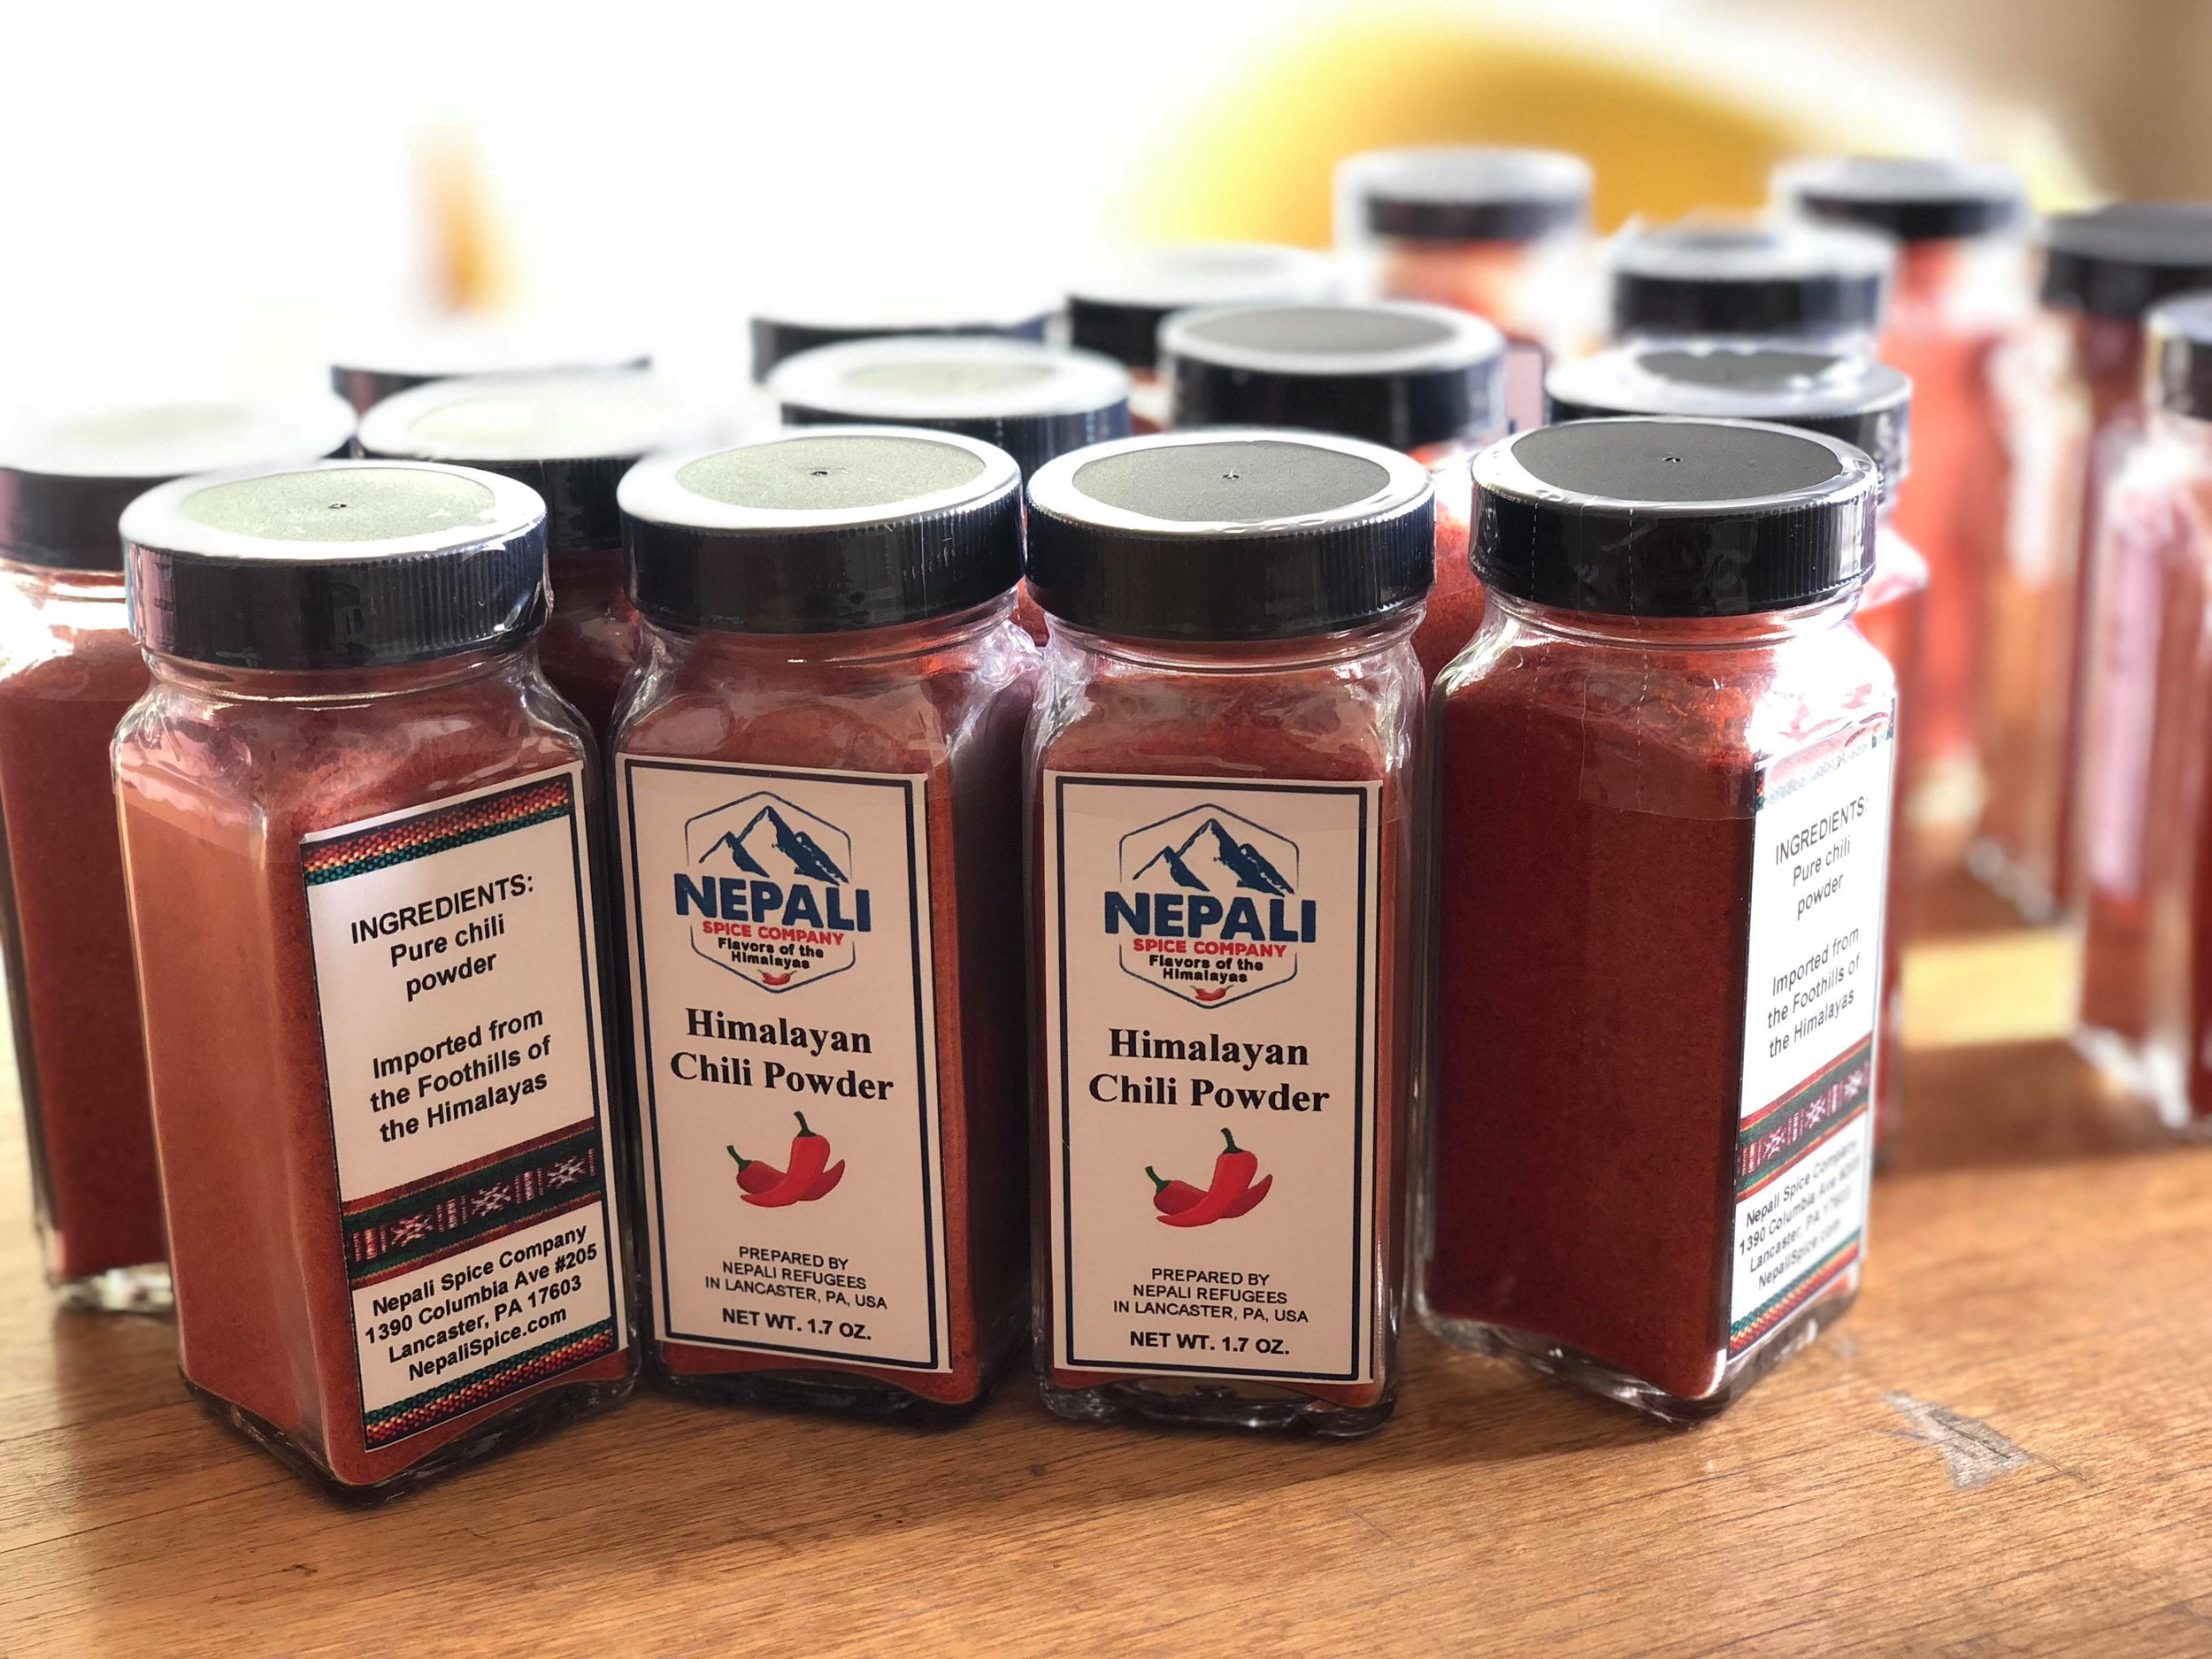 Chili powder can also be known as chili pepper, or cayenne pepper. It is used in many different cuisines to add flavor and pungency to dishes, including Tex-Mex, Indian, Chinese, Korean, and Thai. Chili powder is also known to have several health benefits, including red blood cell formation, maintaining healthy blood pressure, digestion, fighting infections, and is good for the hair and skin. We offer ground chili powder, sourced from the foothills of the Himalayas in Nepal.